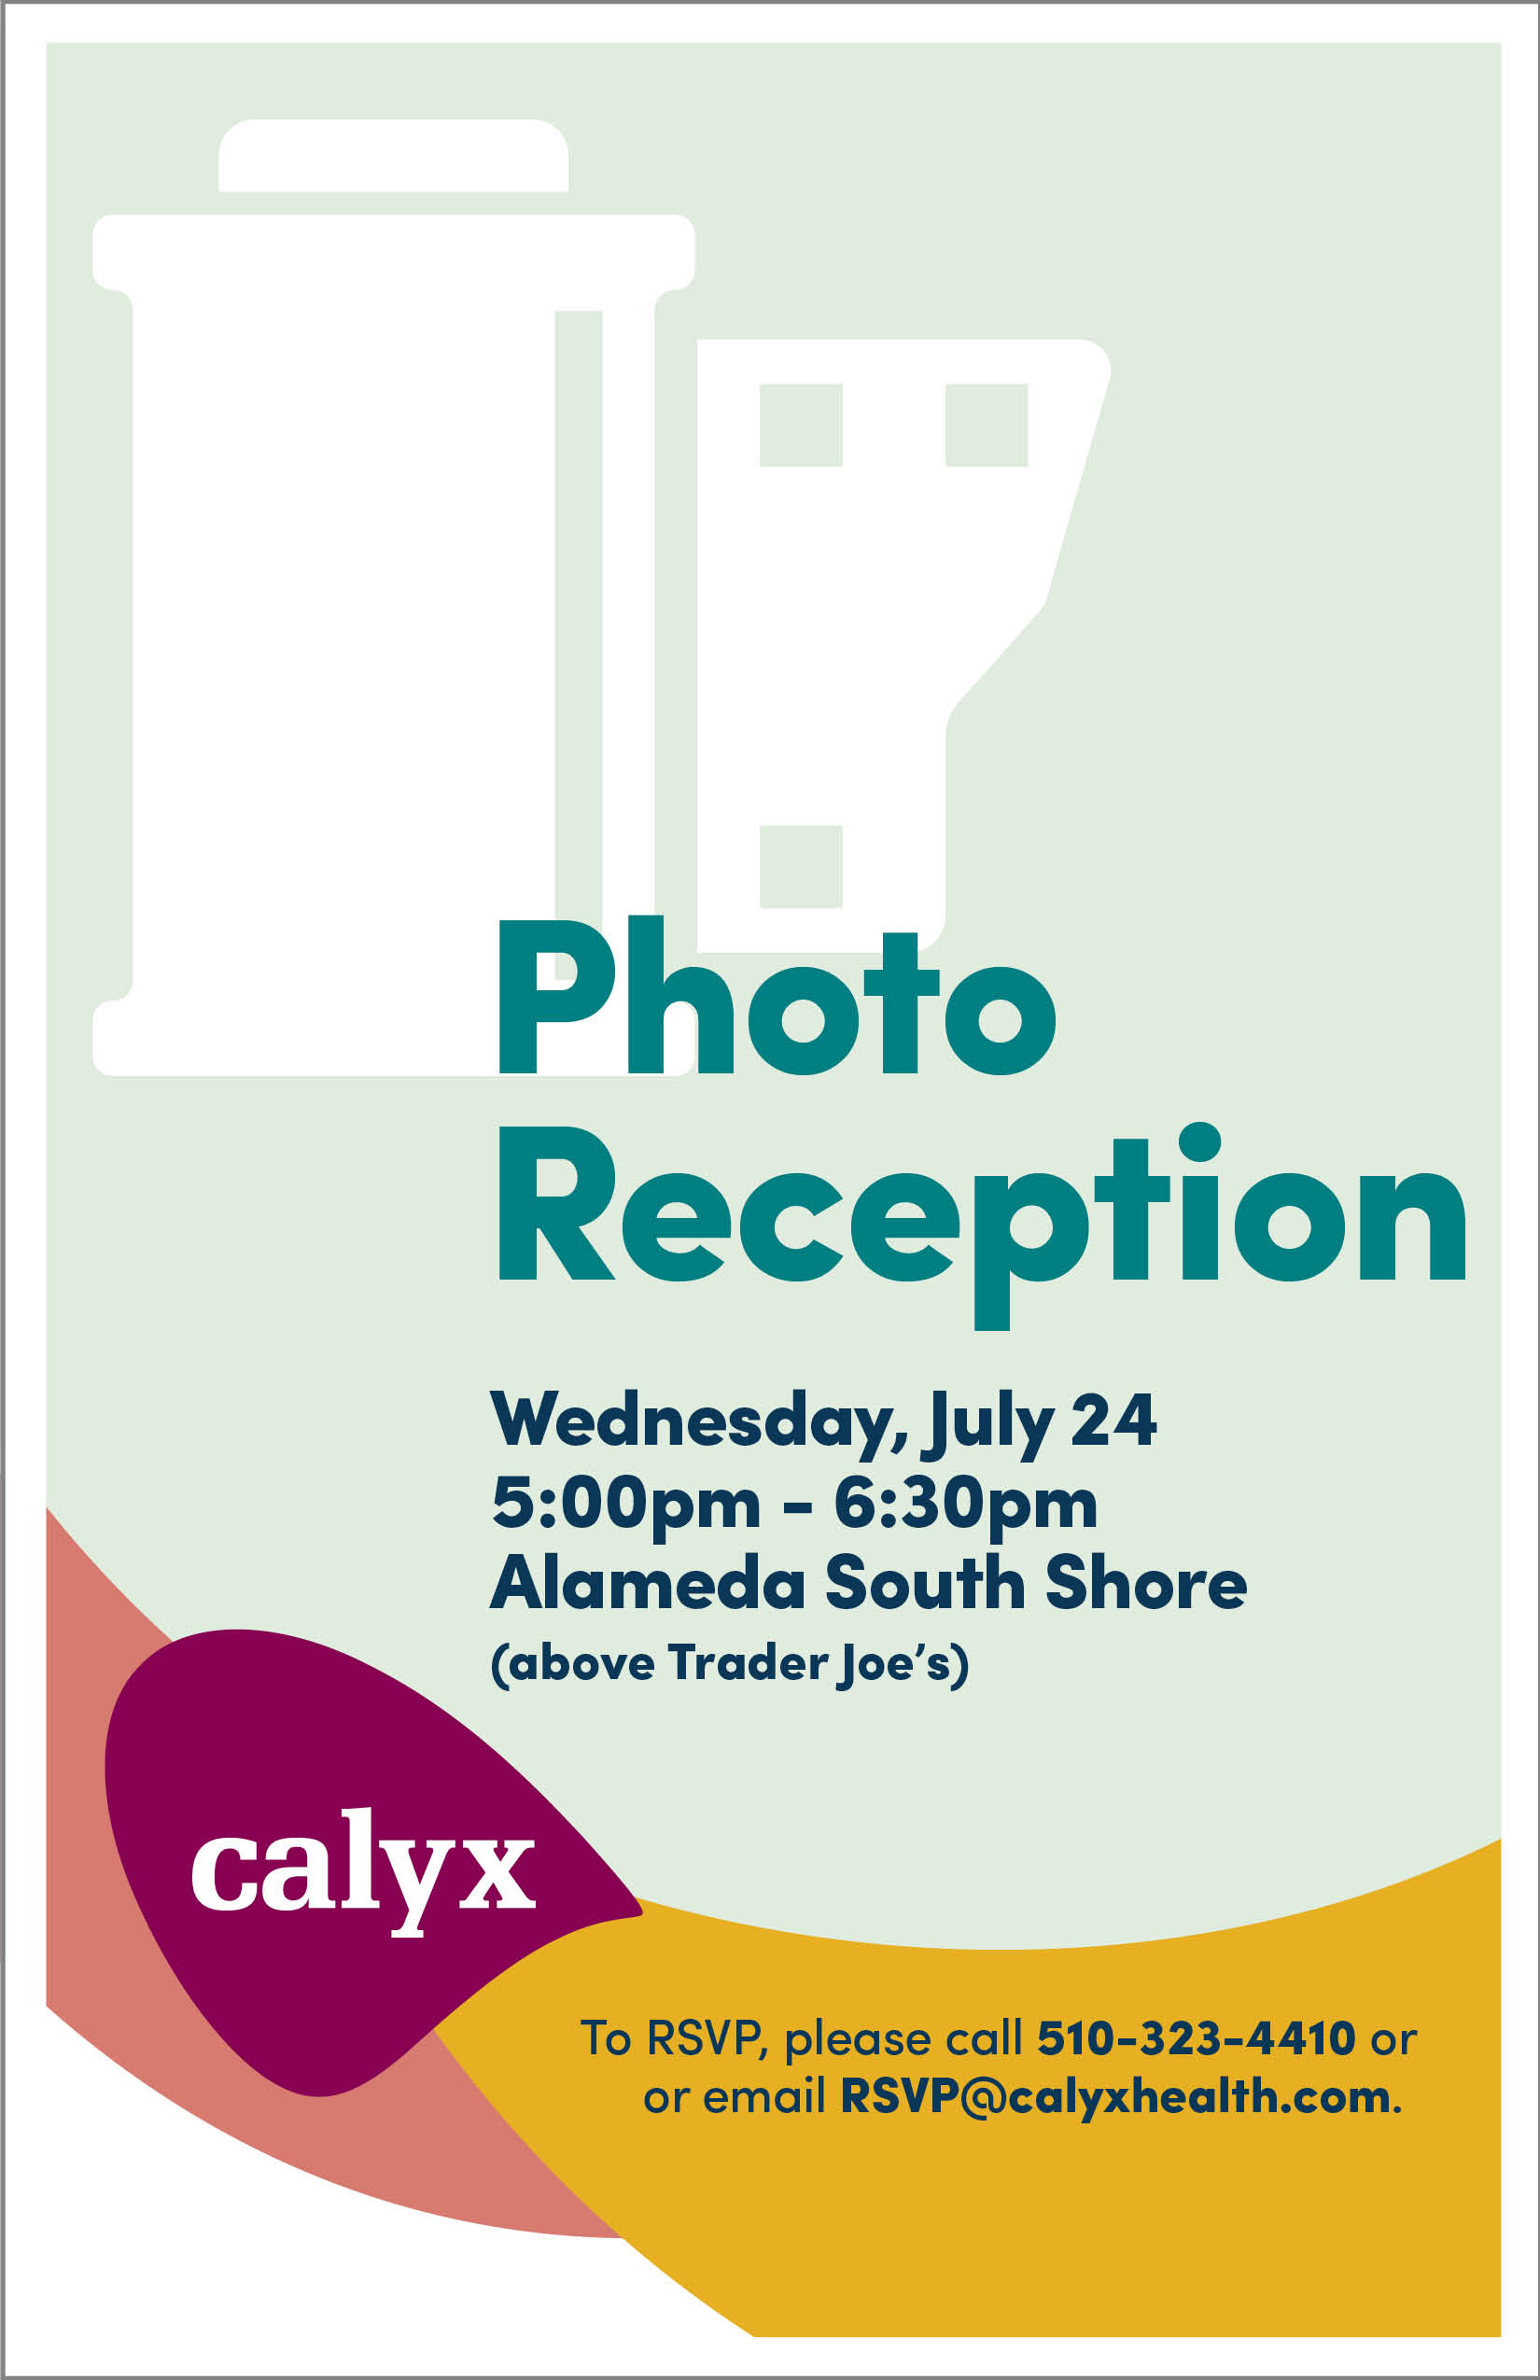 Calyx Health is proud to support the work of local artists in our community. Please join us for a special art reception as we unveil our next exhibit featuring the work of members of the Alameda Photographic Society.   To RSVP:  Call 510-323-4410 or email rsvp@calyxhealth.com